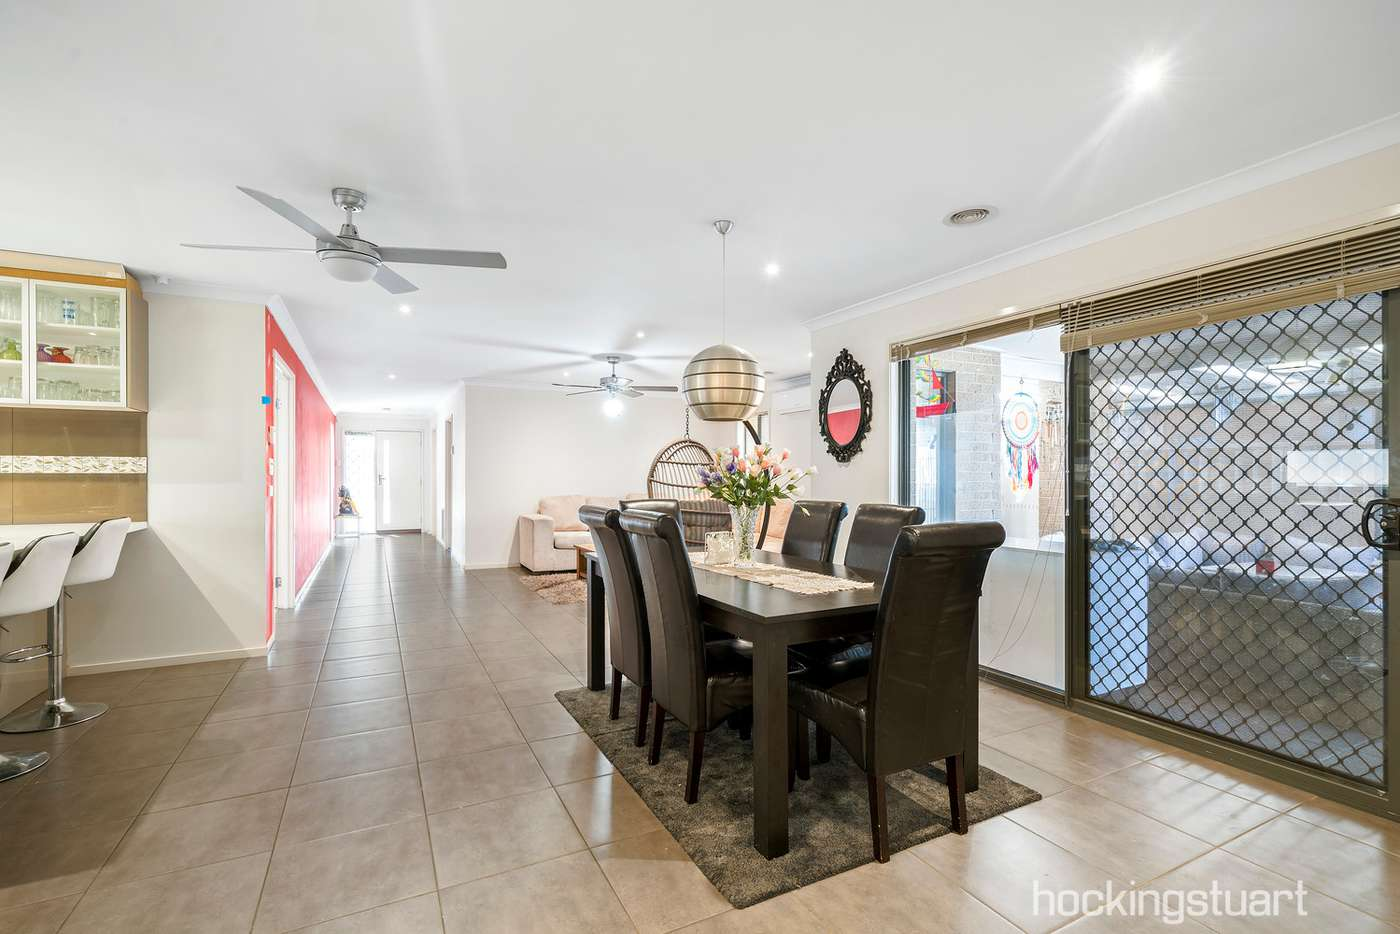 Fifth view of Homely house listing, 15 Kinglake Drive, Manor Lakes VIC 3024